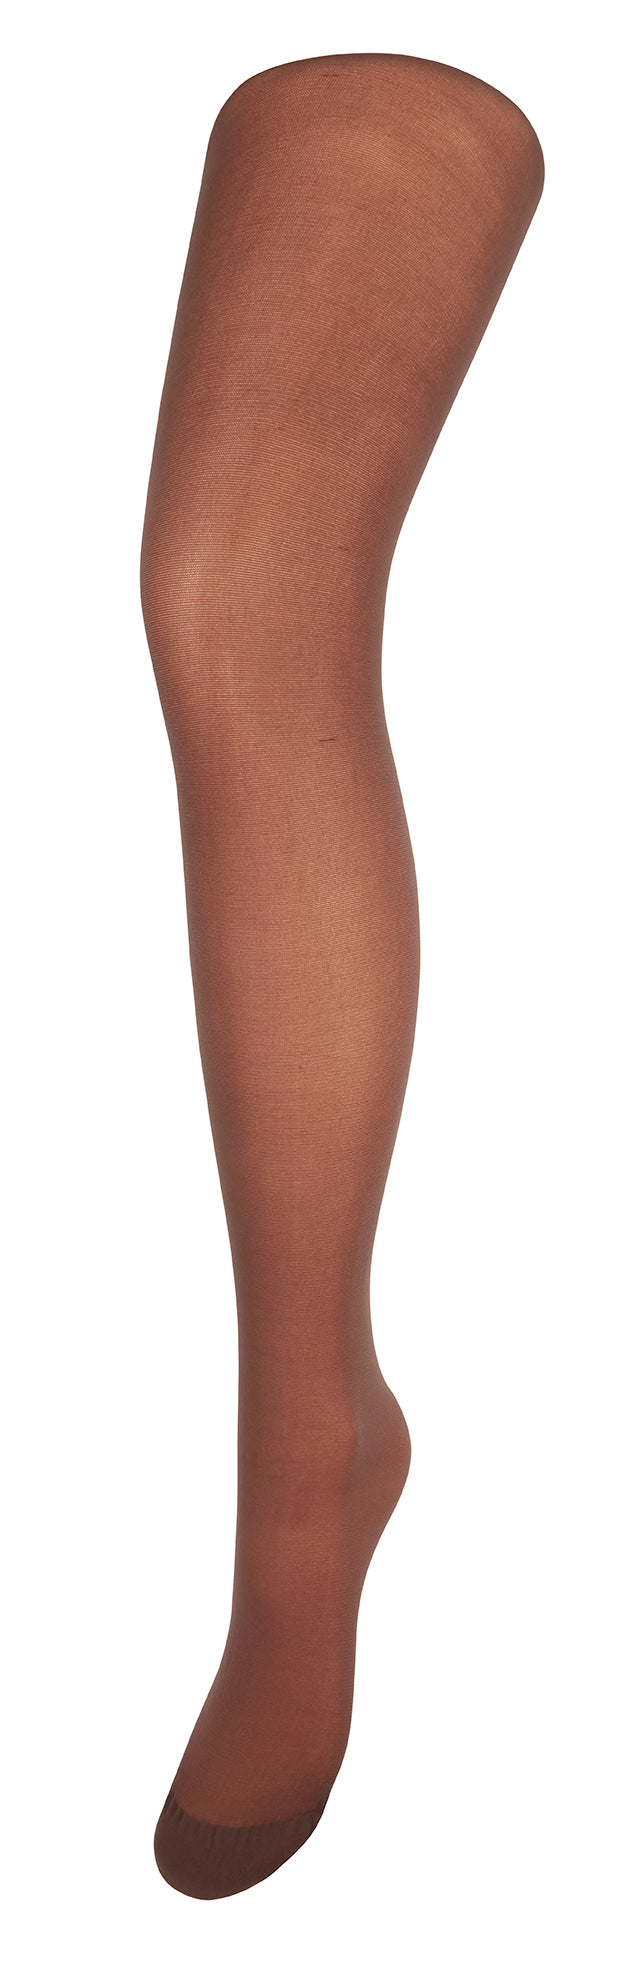 ELLE Sheer Tights 30 Denier